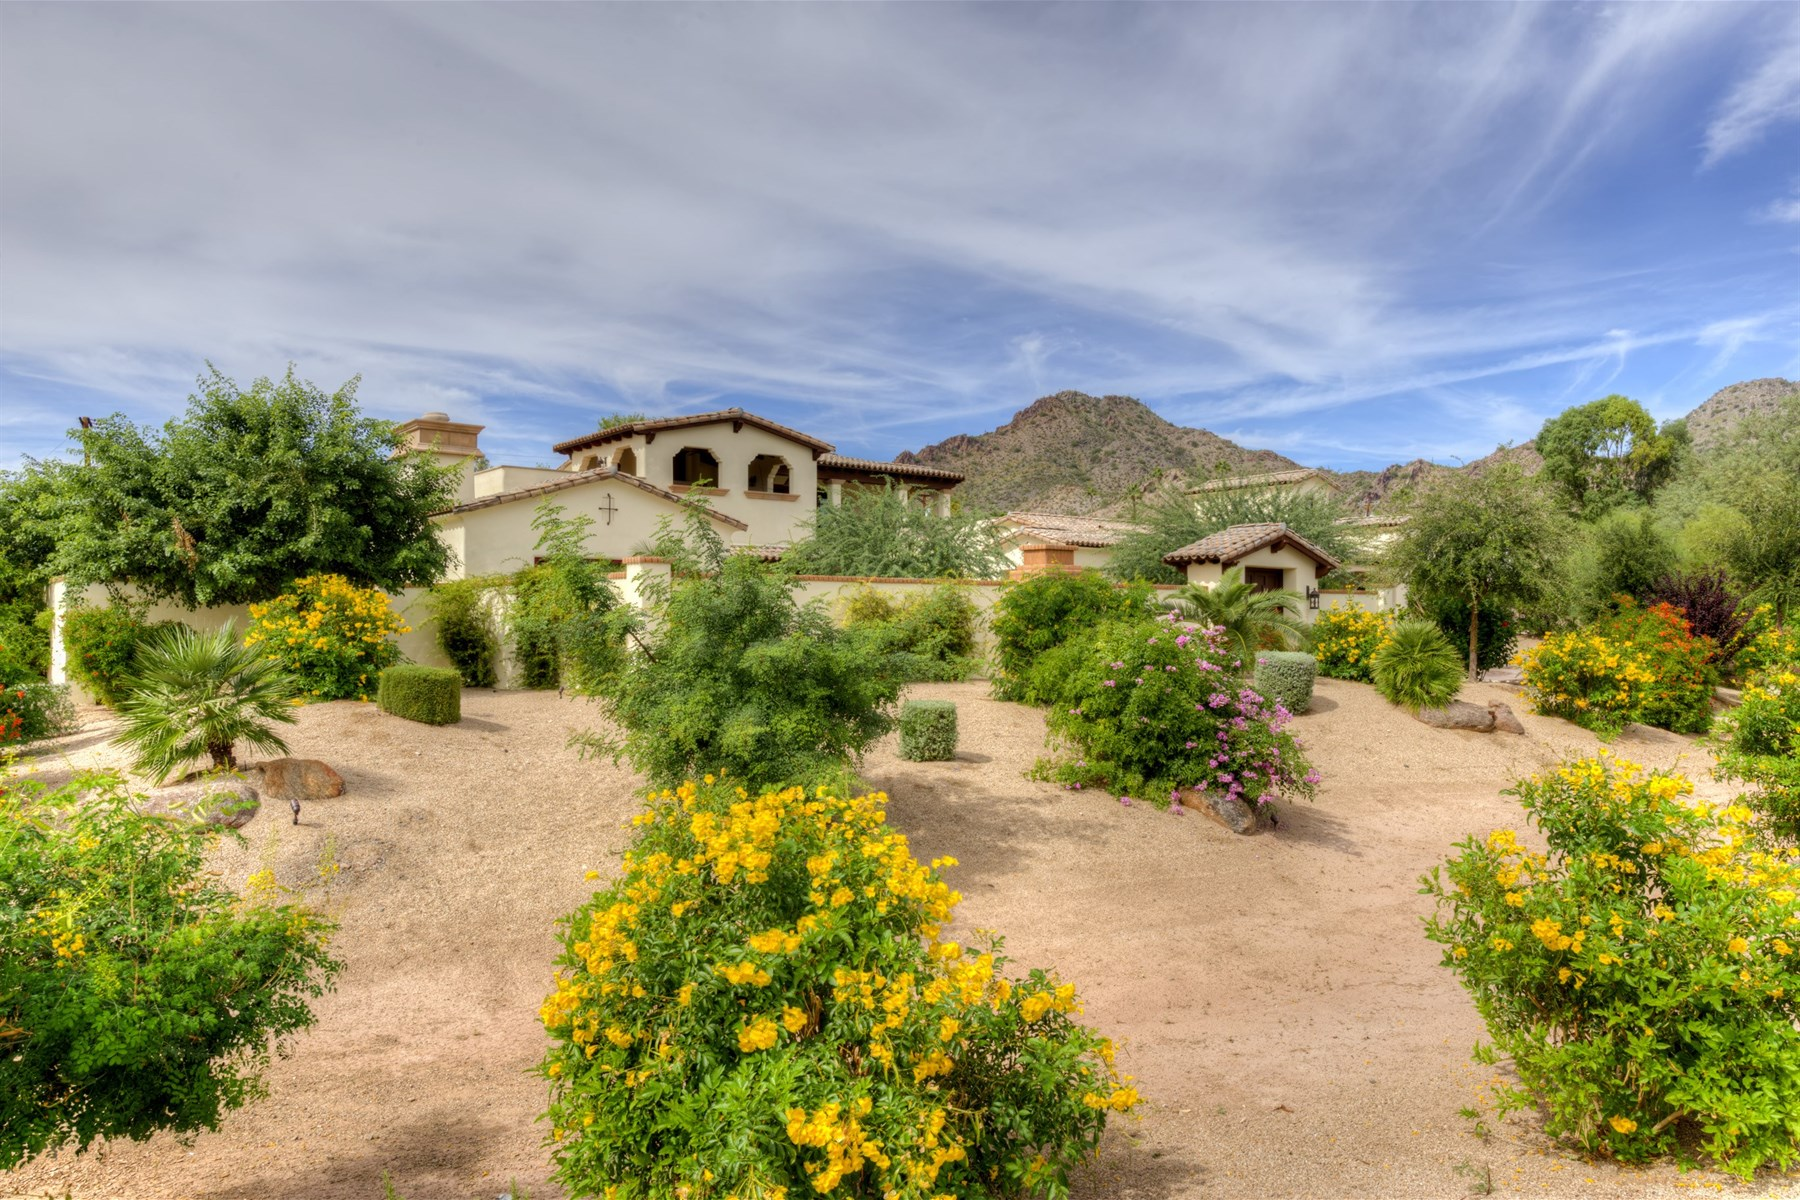 Single Family Home for Sale at Centrally Located Custom Santa Barbara Style Home In Paradise Valley 6504 N 40th Place Paradise Valley, Arizona 85253 United States